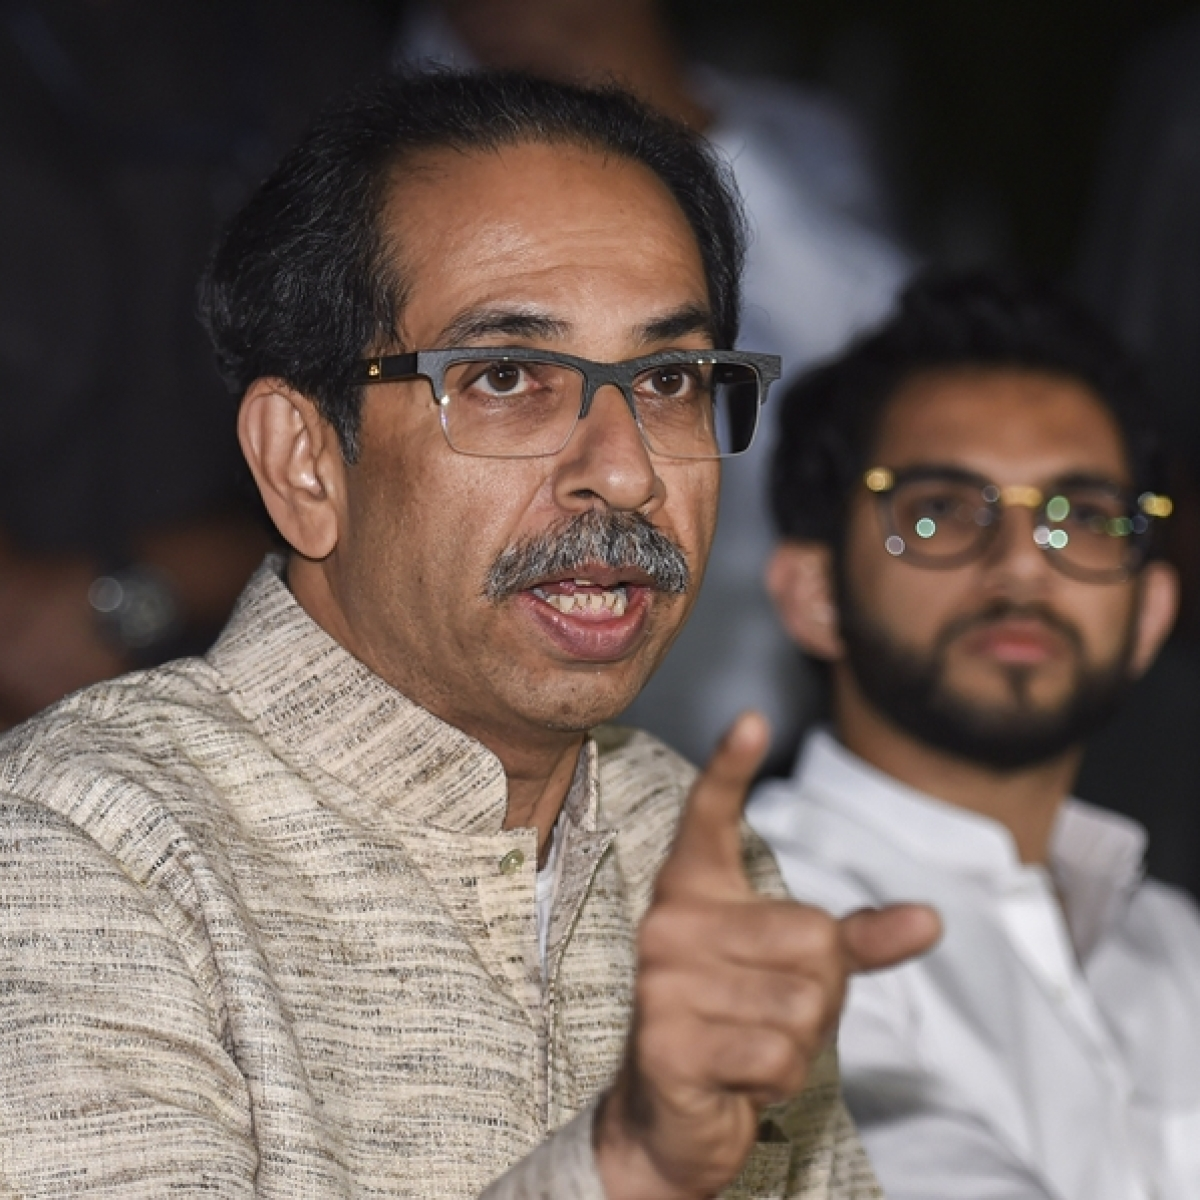 Coronavirus in Maharashtra: 'Stern warning to those creating rift in society', says Uddhav claims 100% Tablighis have been identified and isolated